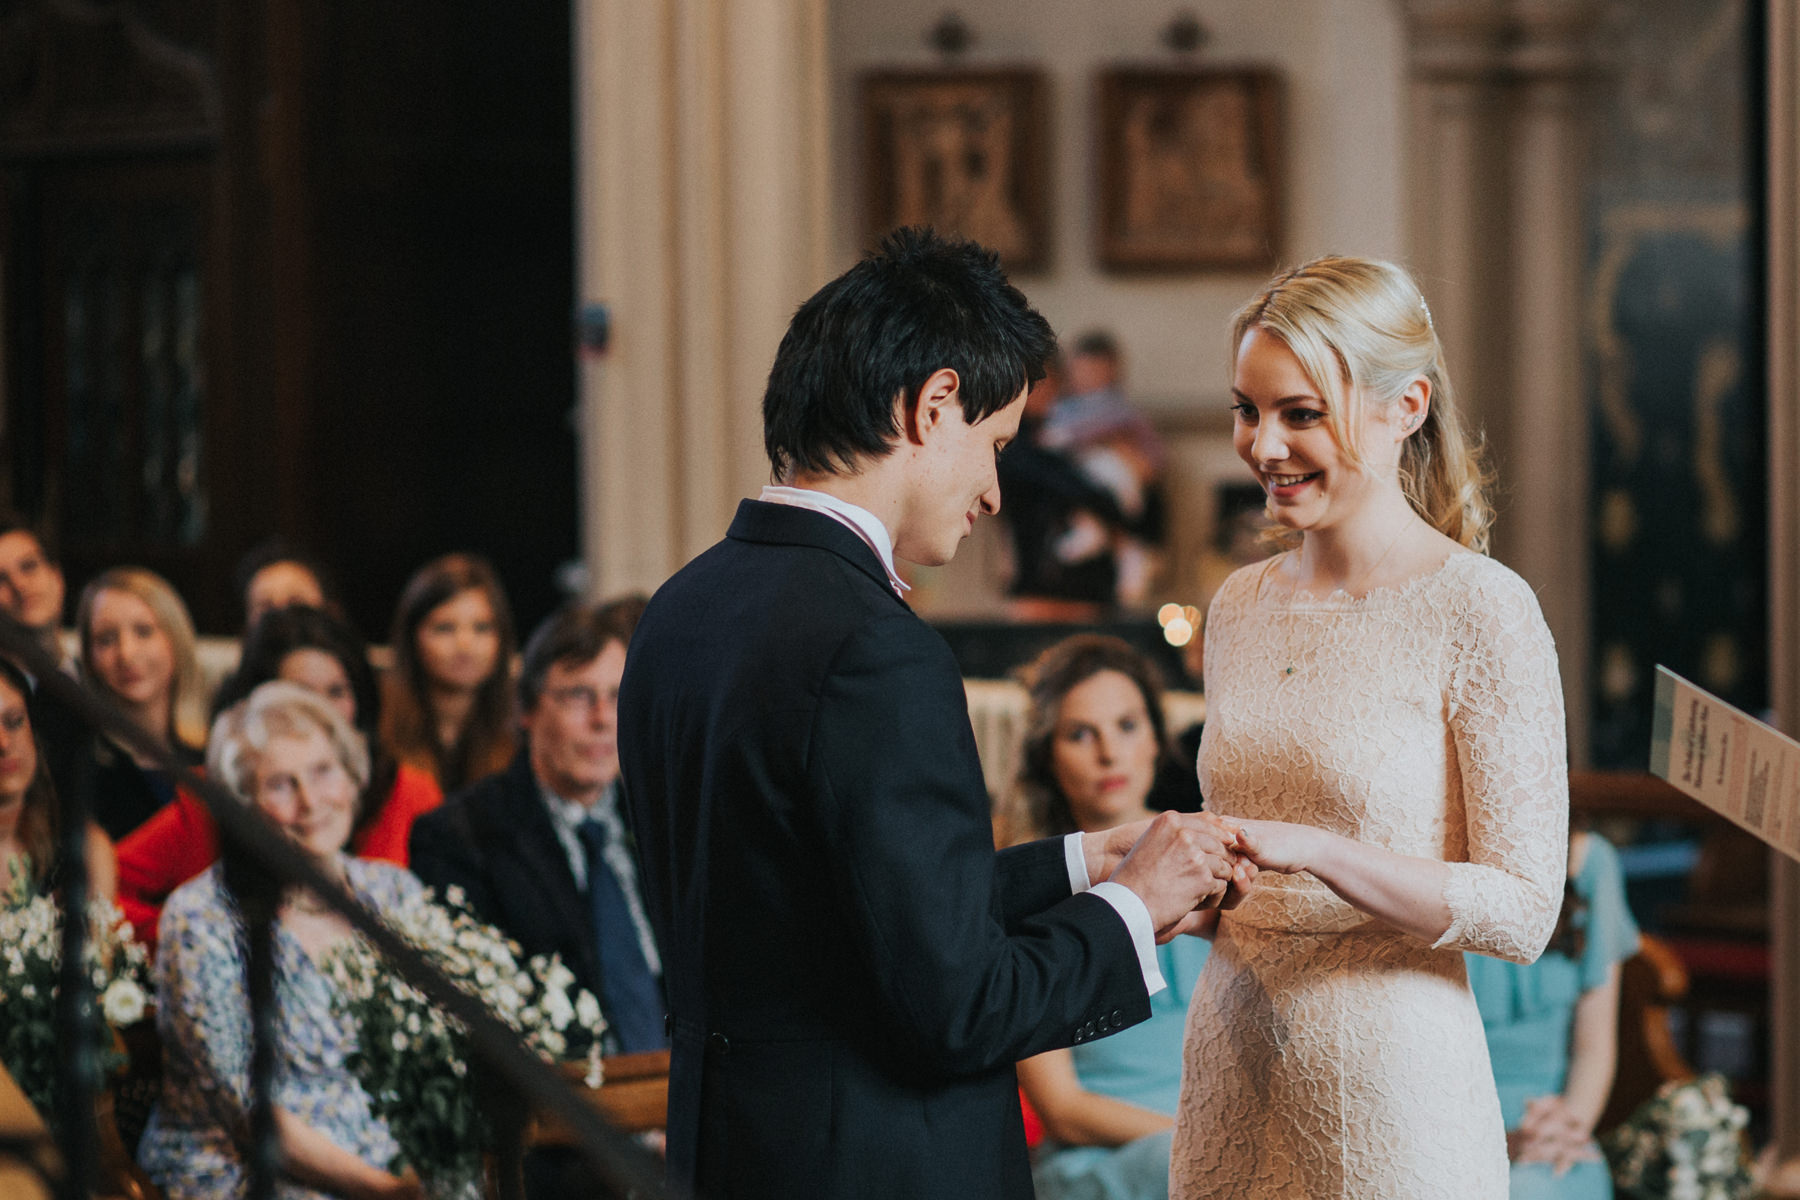 LD-237-catholic-marriage-ceremony-London-bride-groom-exchanging-rings-photography.jpg